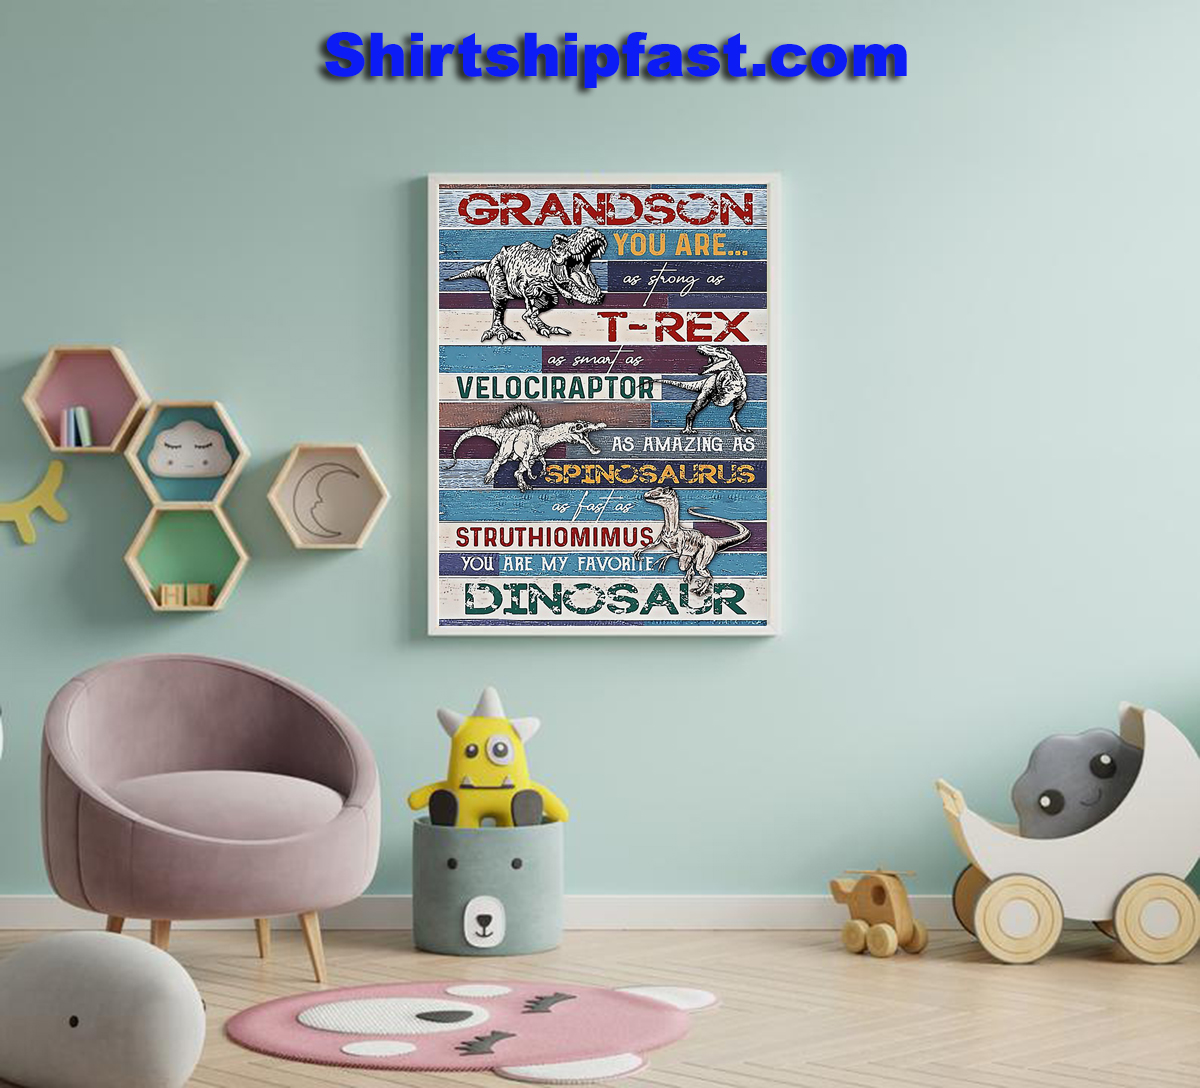 Grandson You are my favorite dinosaur poster